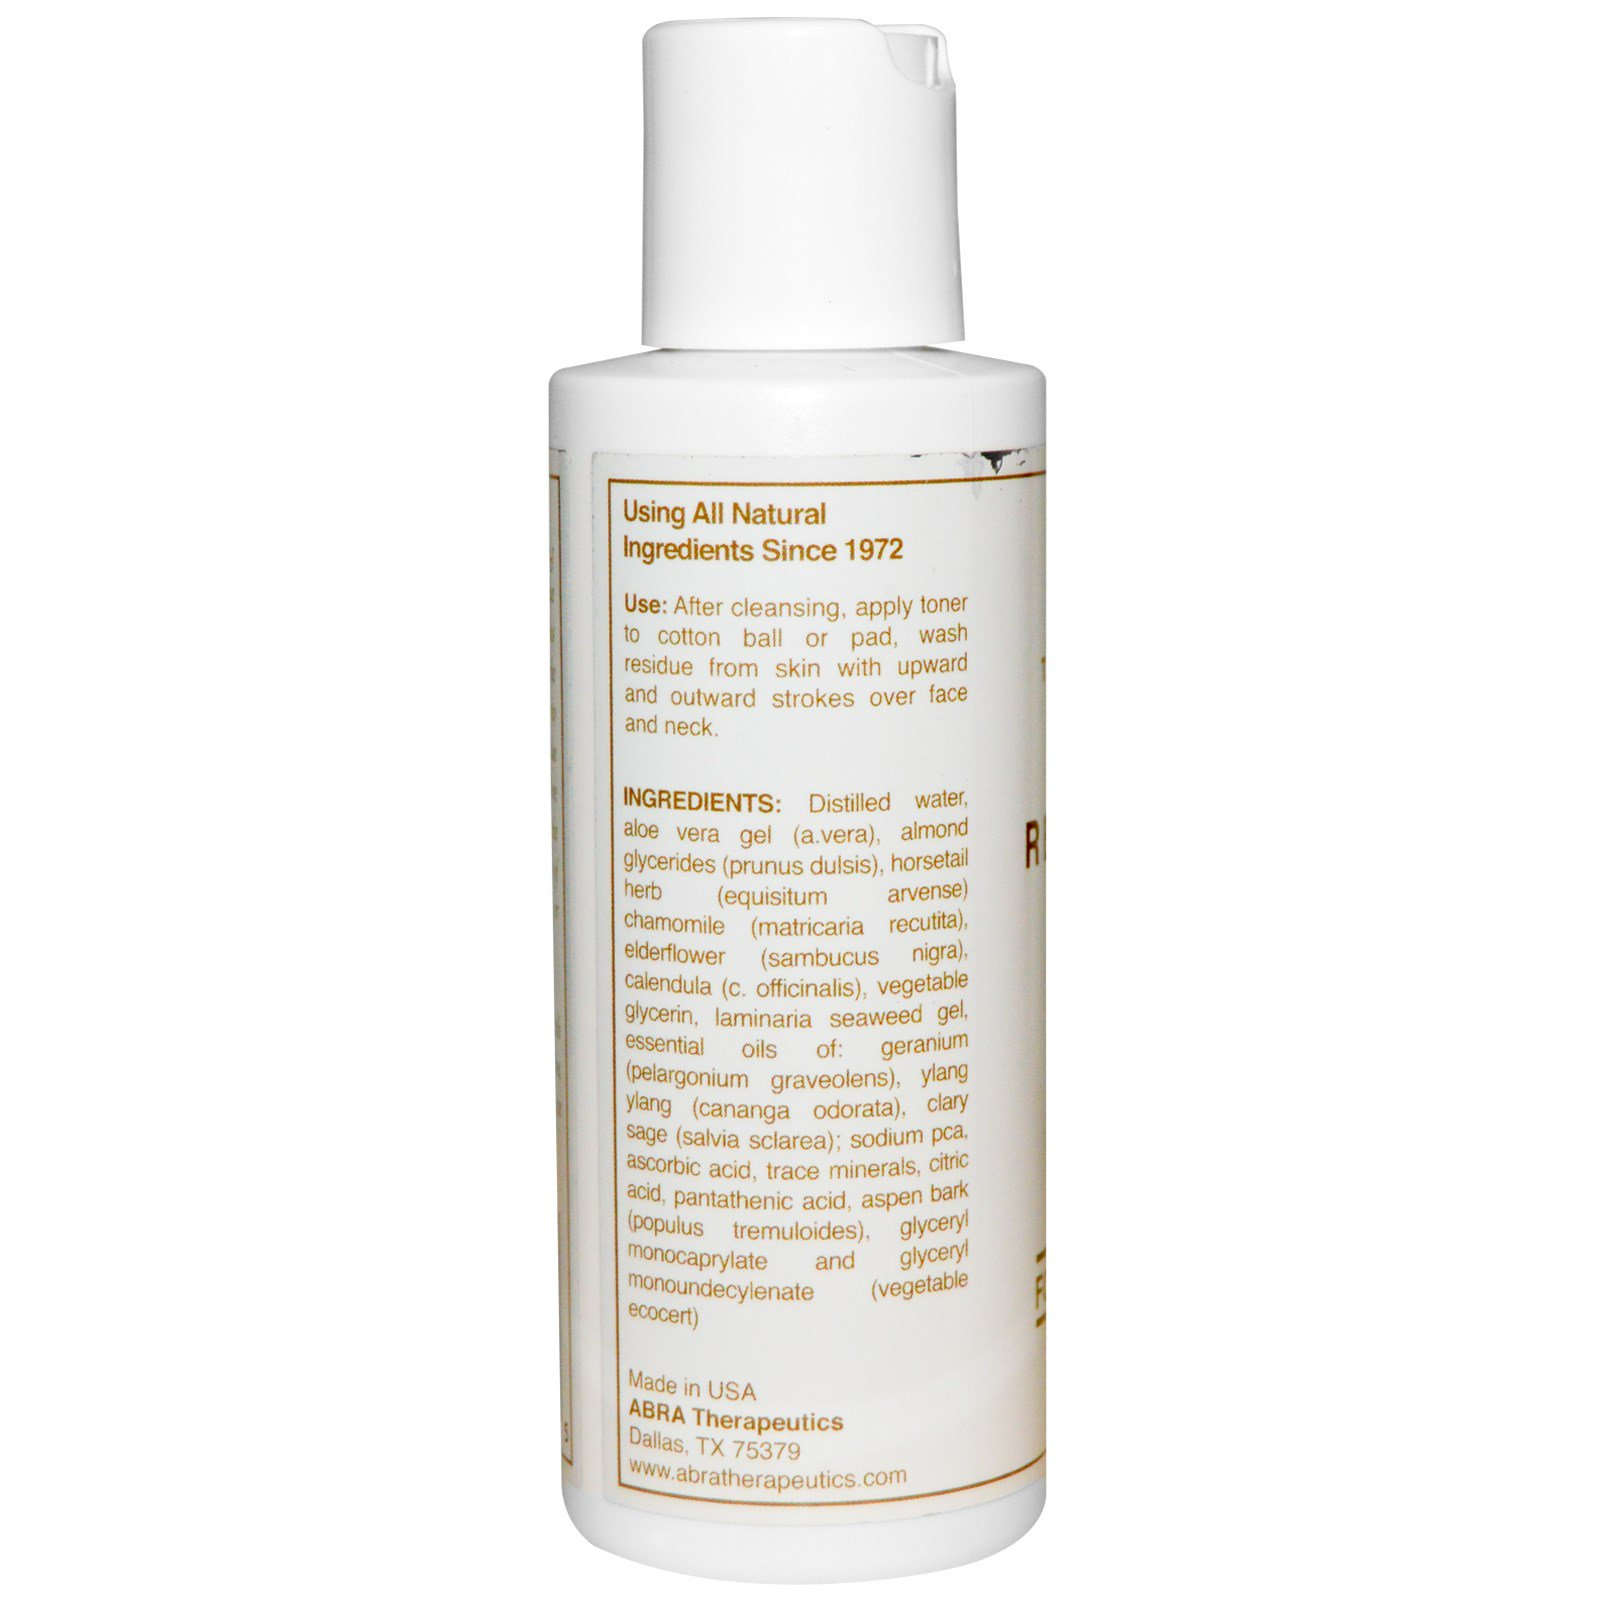 Abra Therapeutics Restorative Toner For Dry And Dehydrated Skin - 4 Oz MEDI-FIRST Eyewash 98.3% Ophthalmic Solution Single Use 4oz 6 Bottles